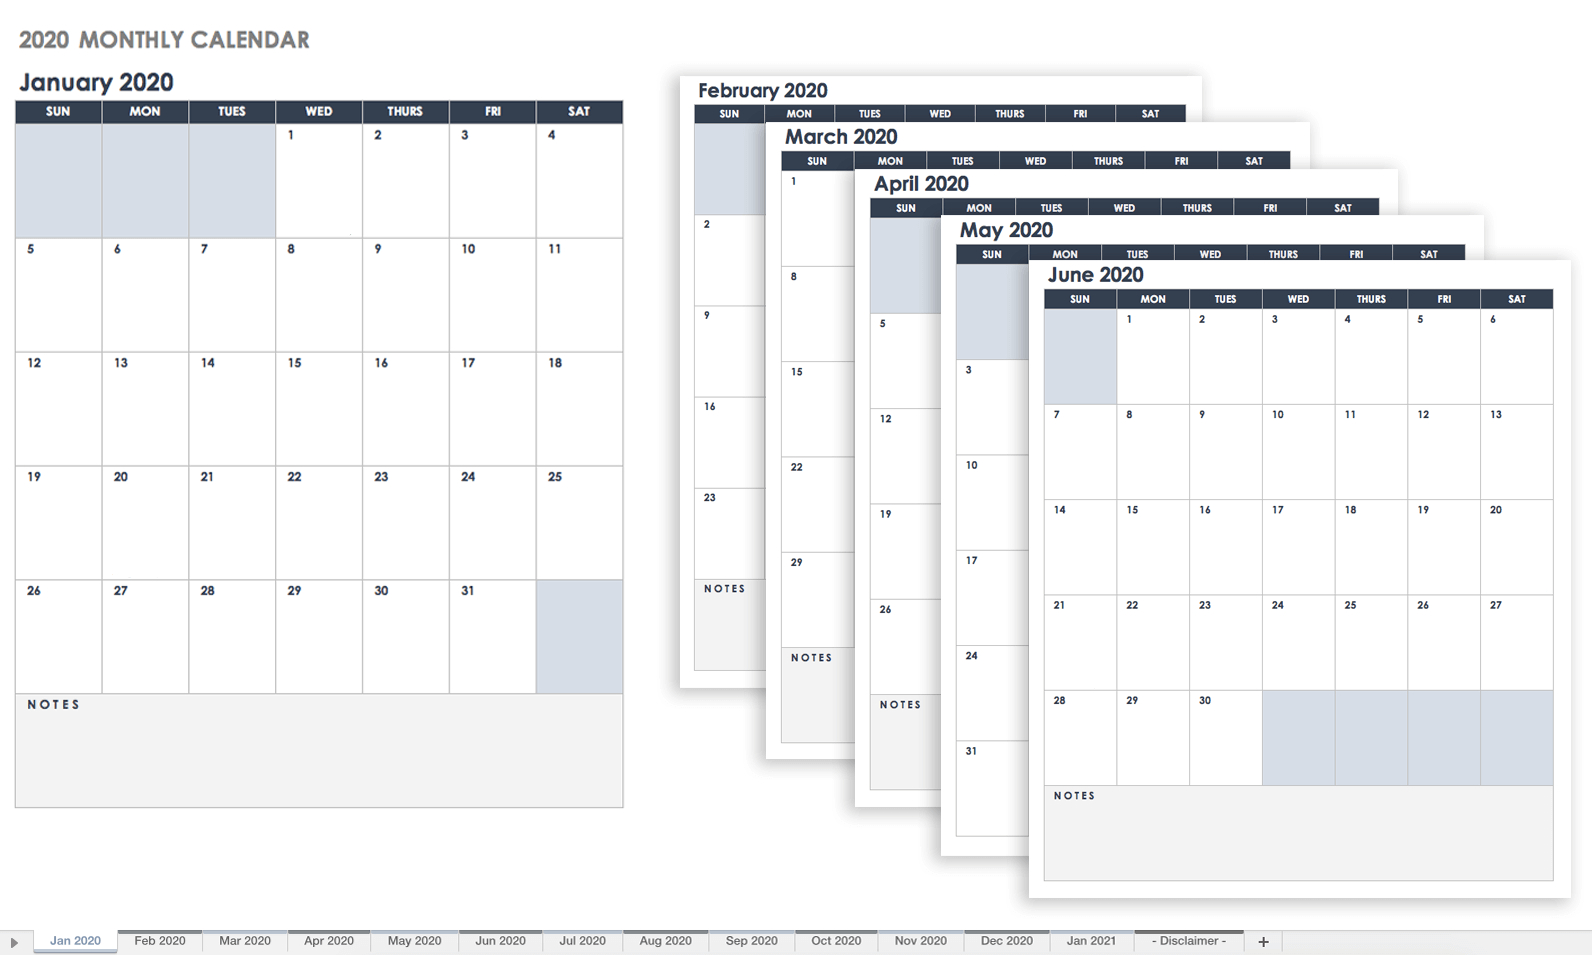 Free Google Calendar Templates | Smartsheet in Gant Chart Calendar Year In Weeks For 2020